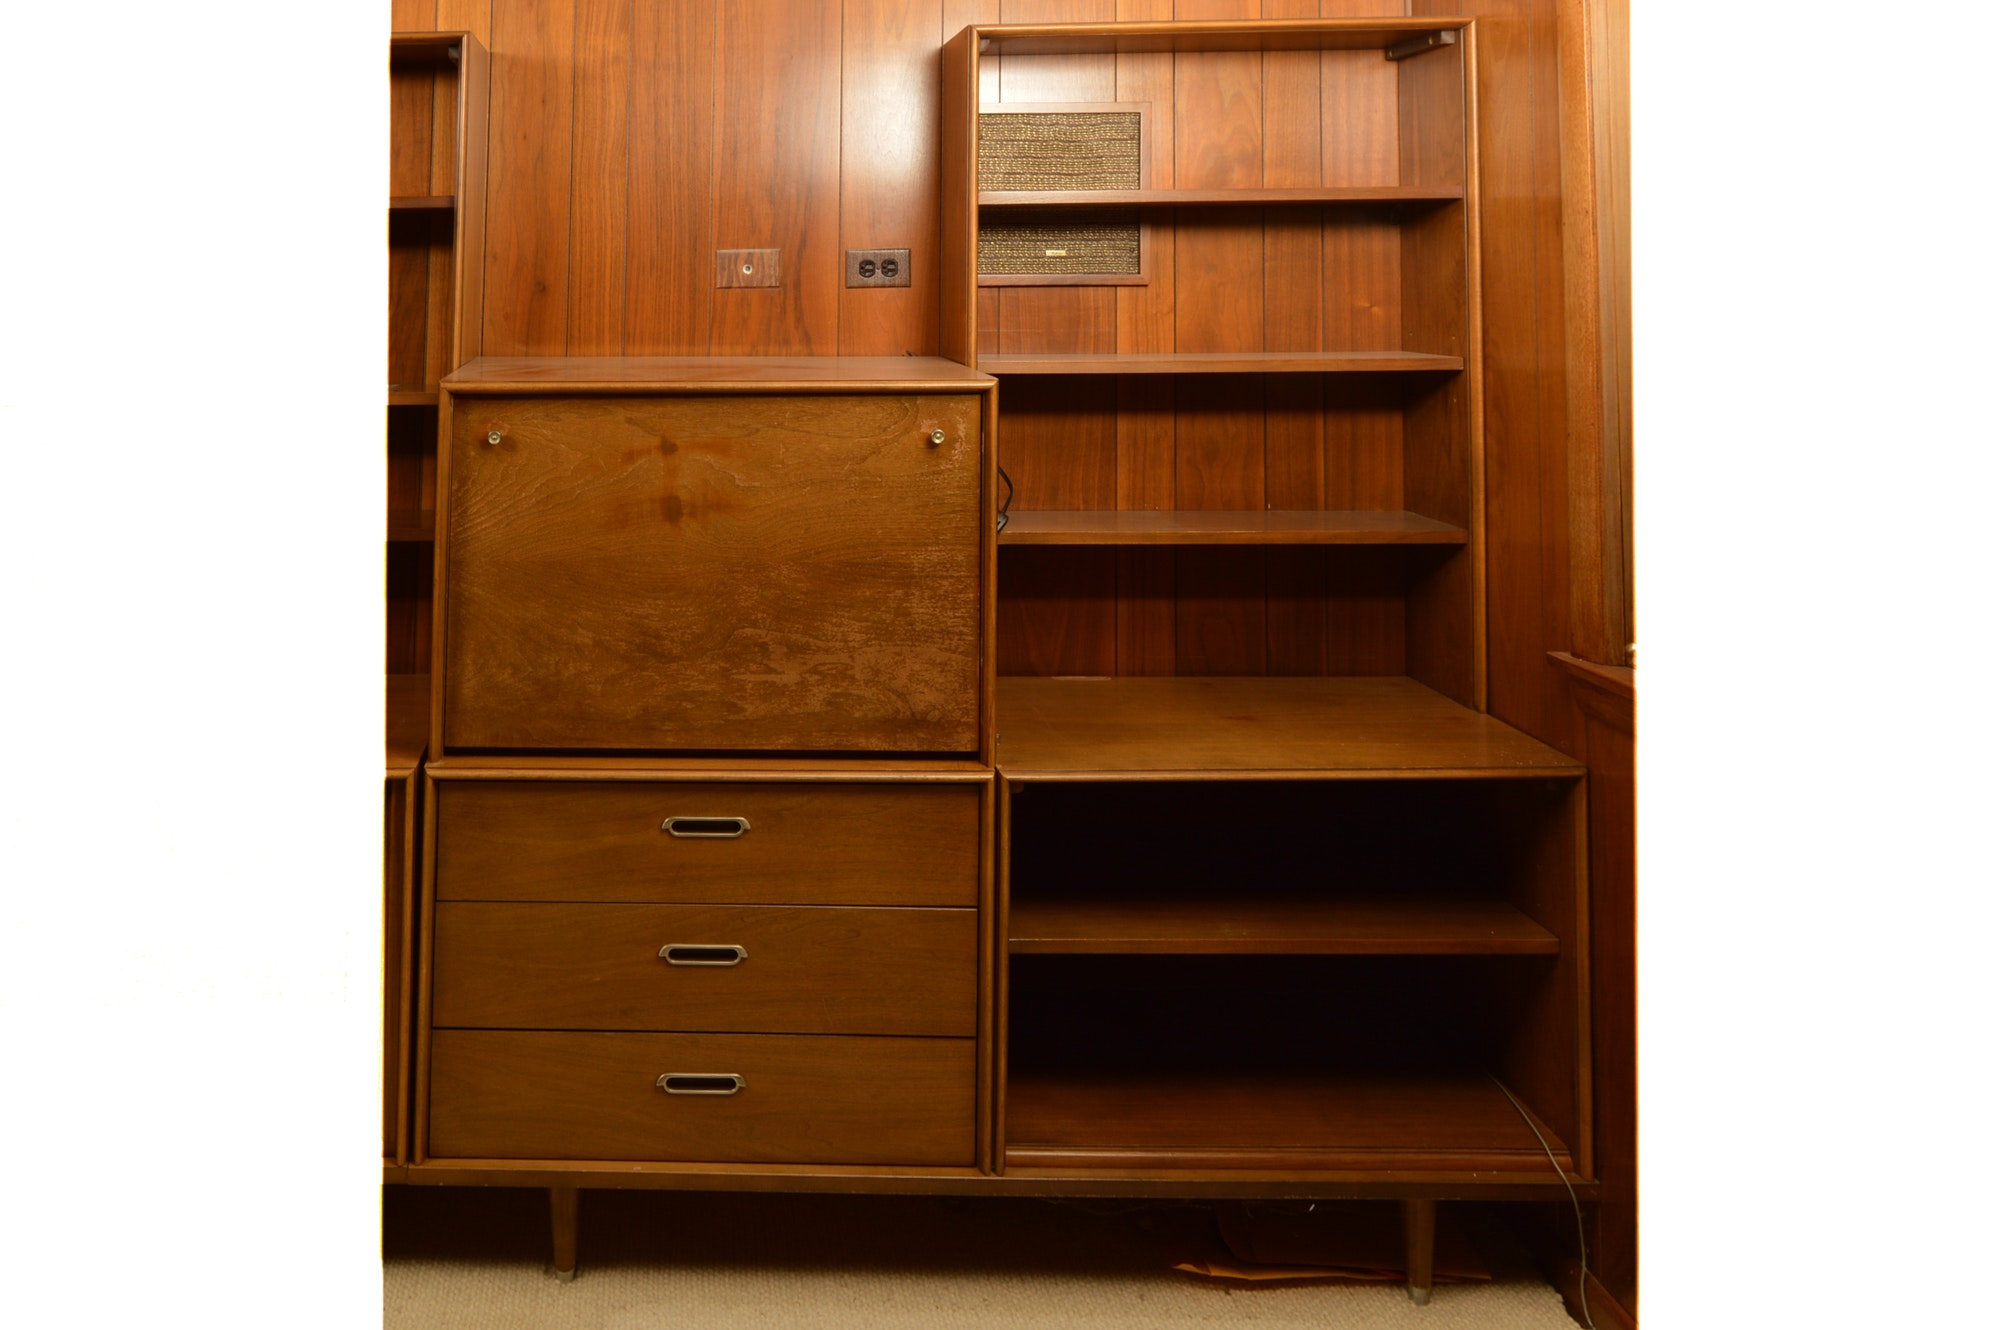 Mid Century Modern Style Unit With Bookcase, Secretary Cabinet and Drawers